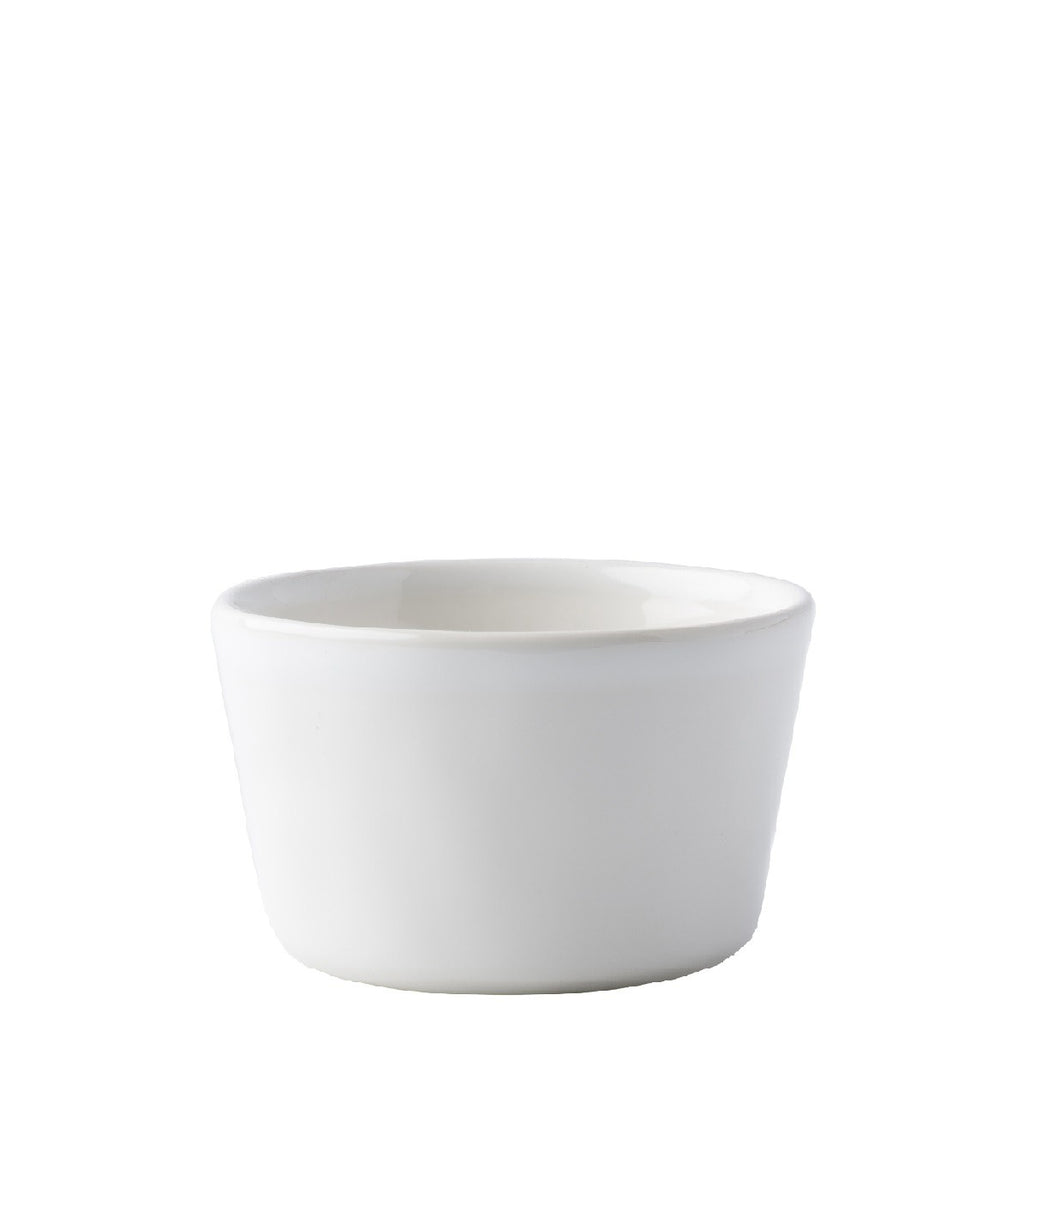 Puro Whitewash Ramekin